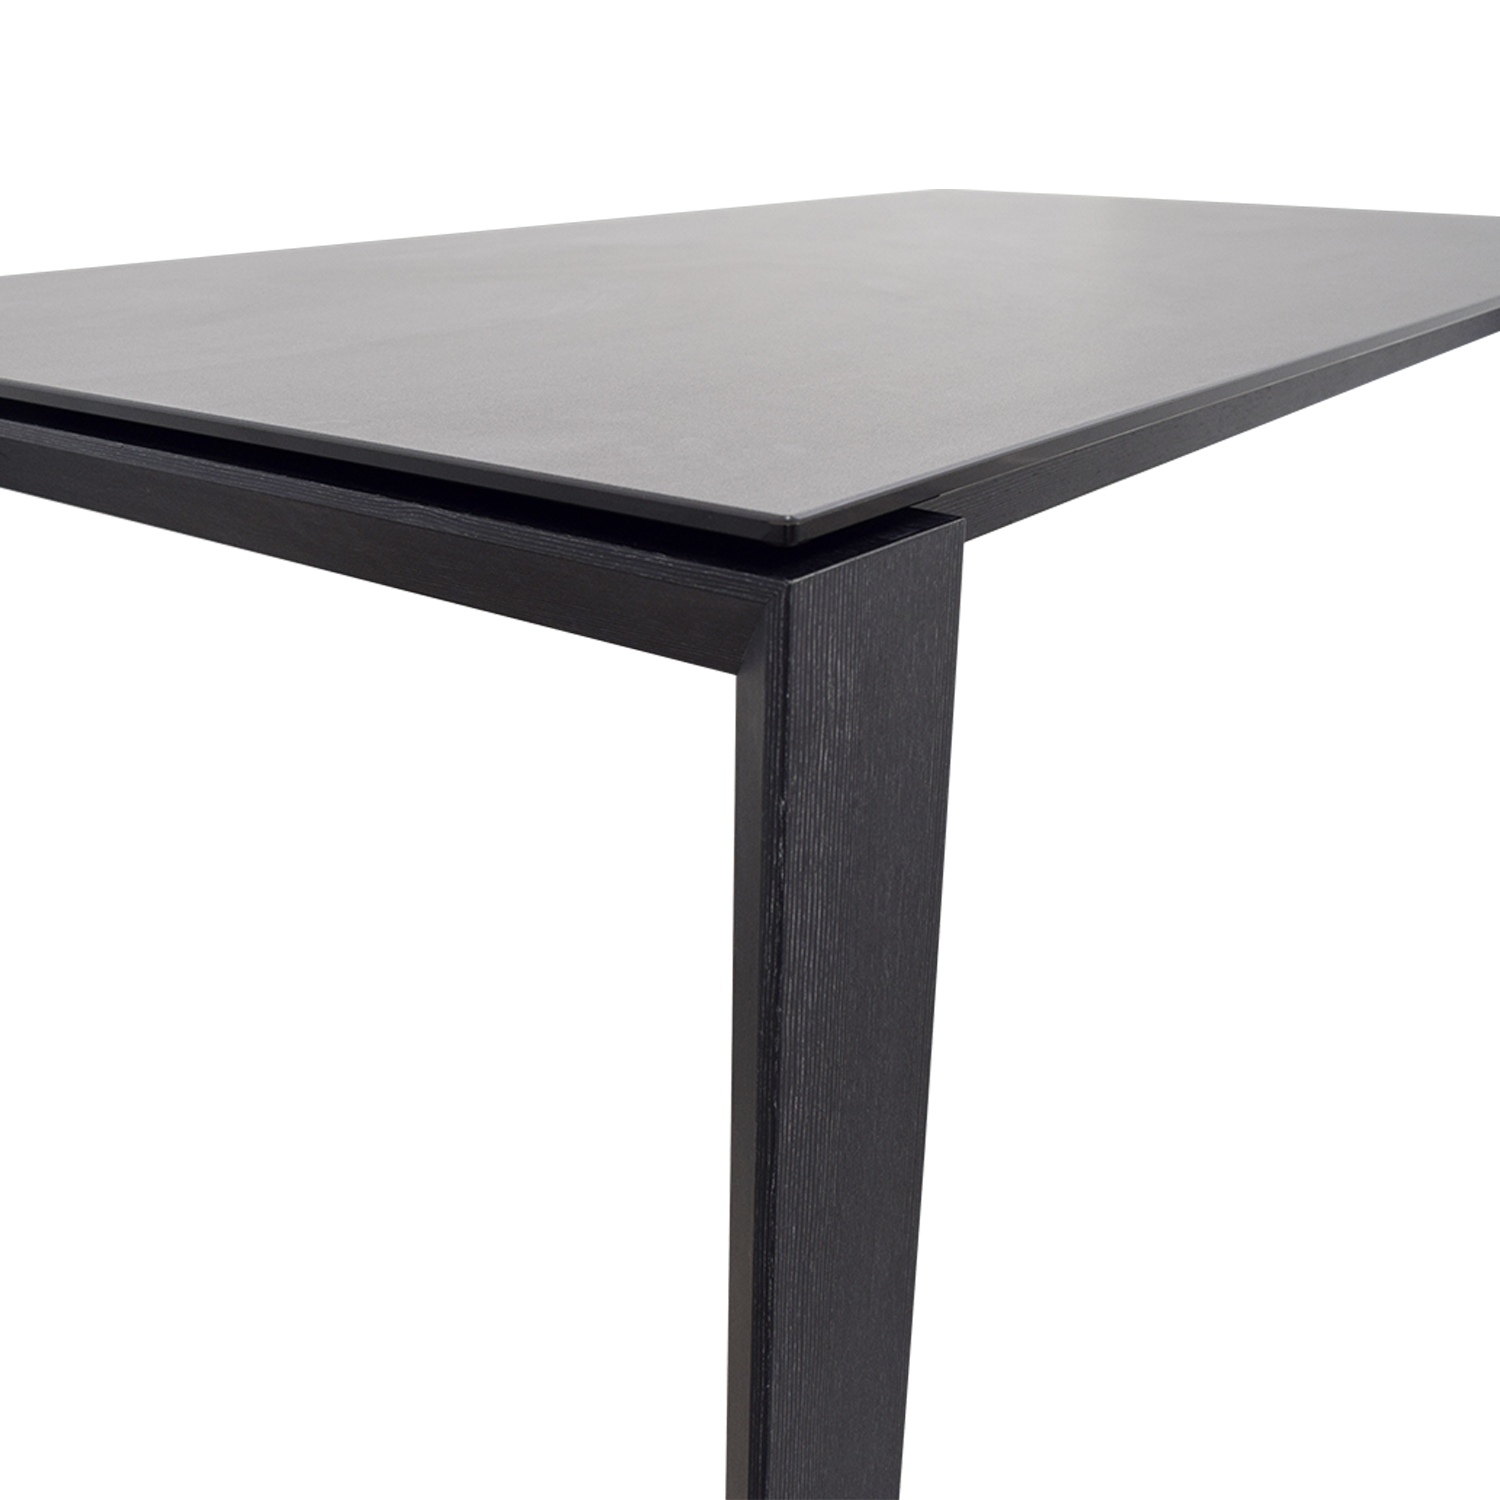 Calligaris Calligaris Omina XL Extension Dining Table discount